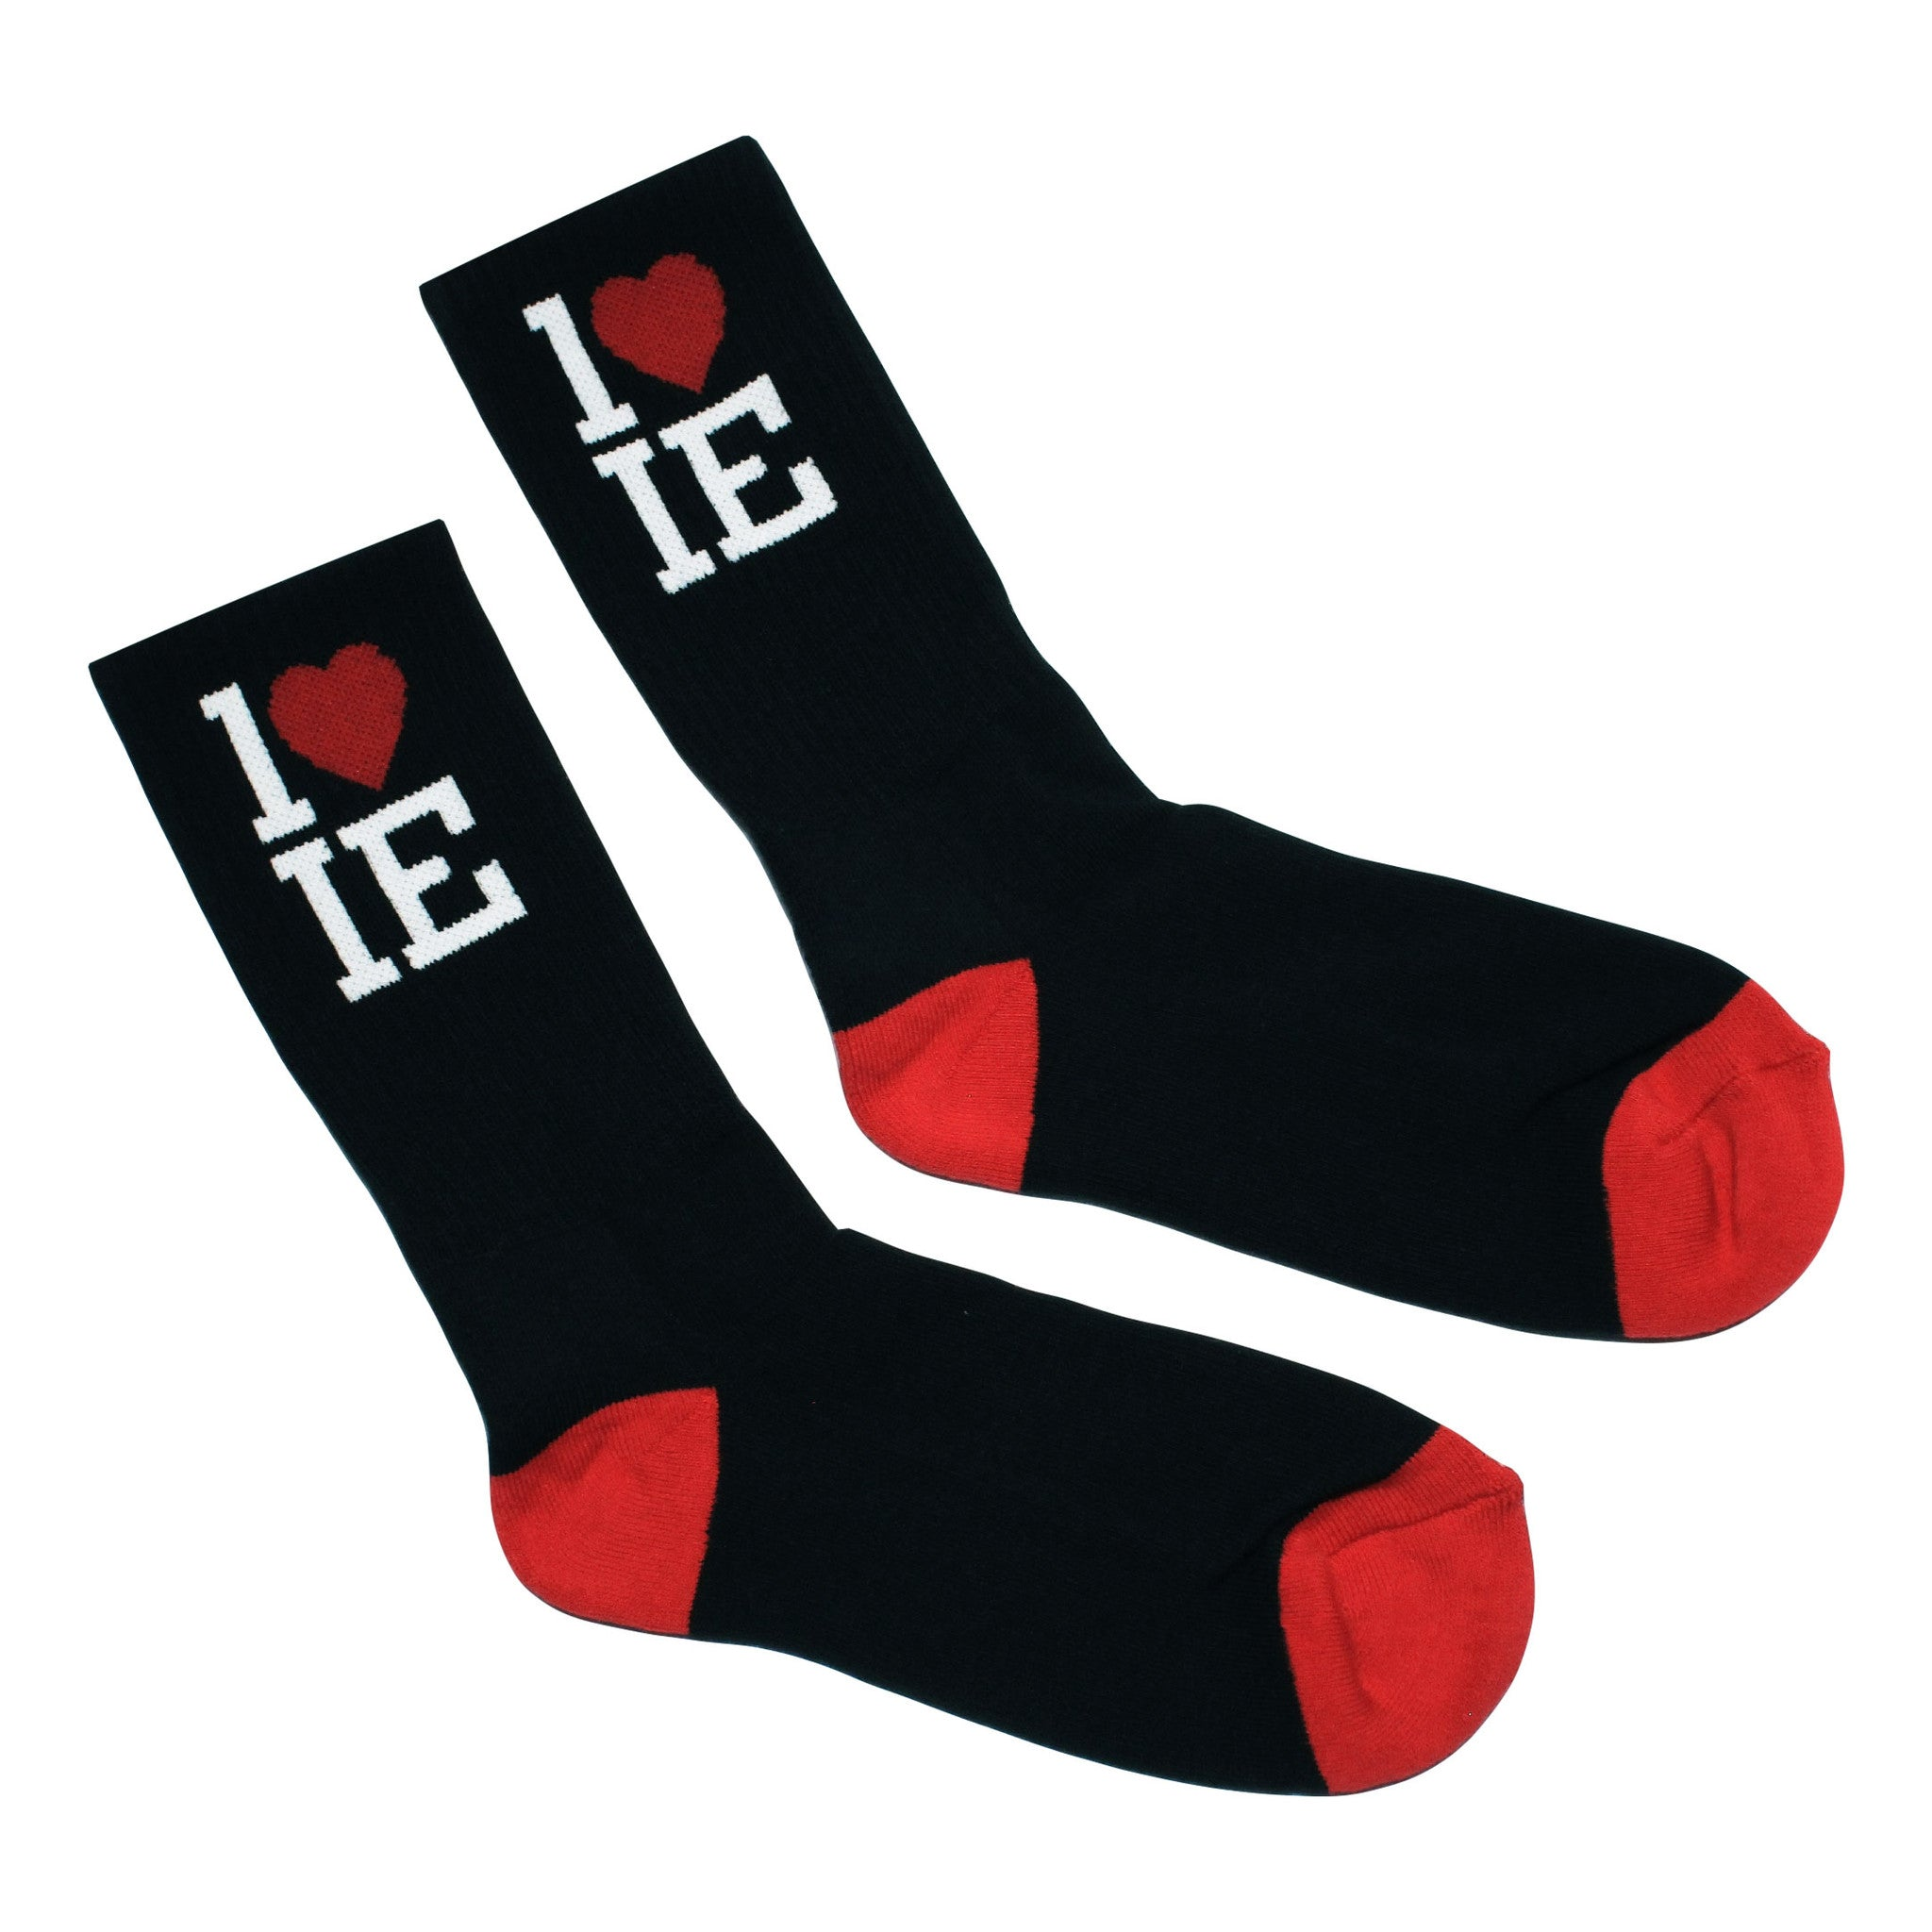 1LoveIE Crew Socks Black (3 Pack)